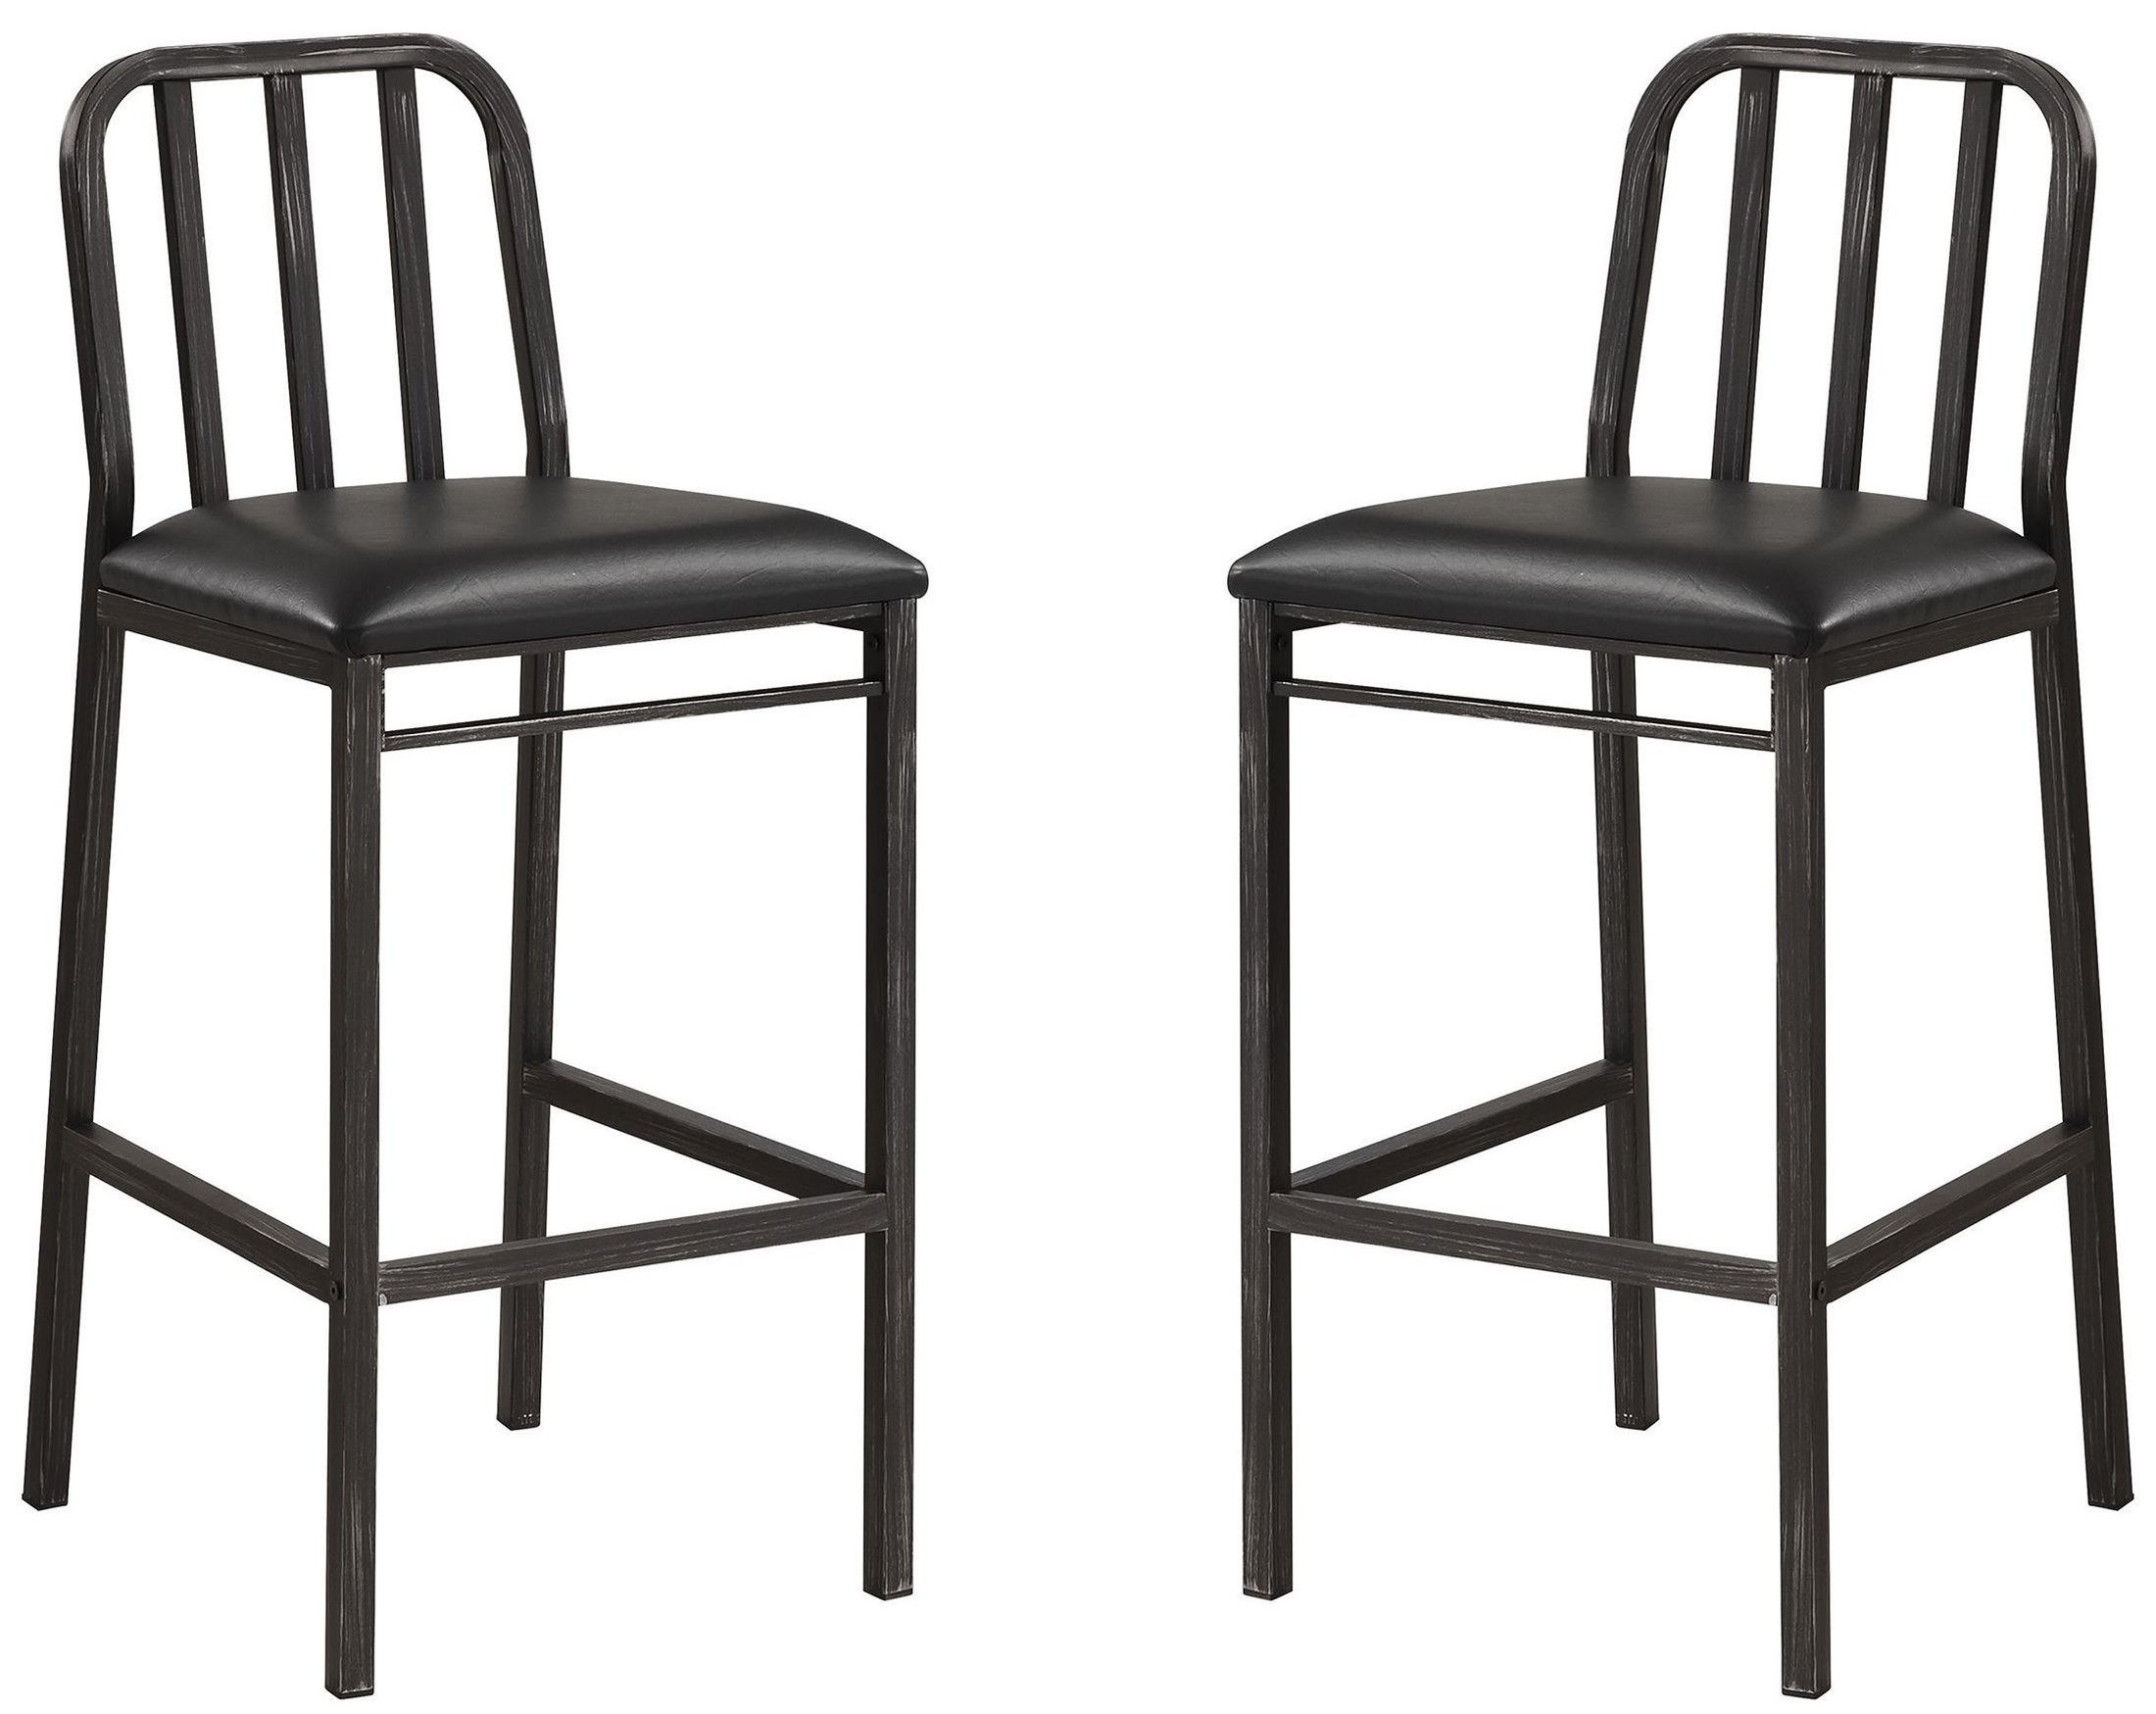 Dark Rustic Bar Stool Set Of 2 From Coaster Coleman Furniture